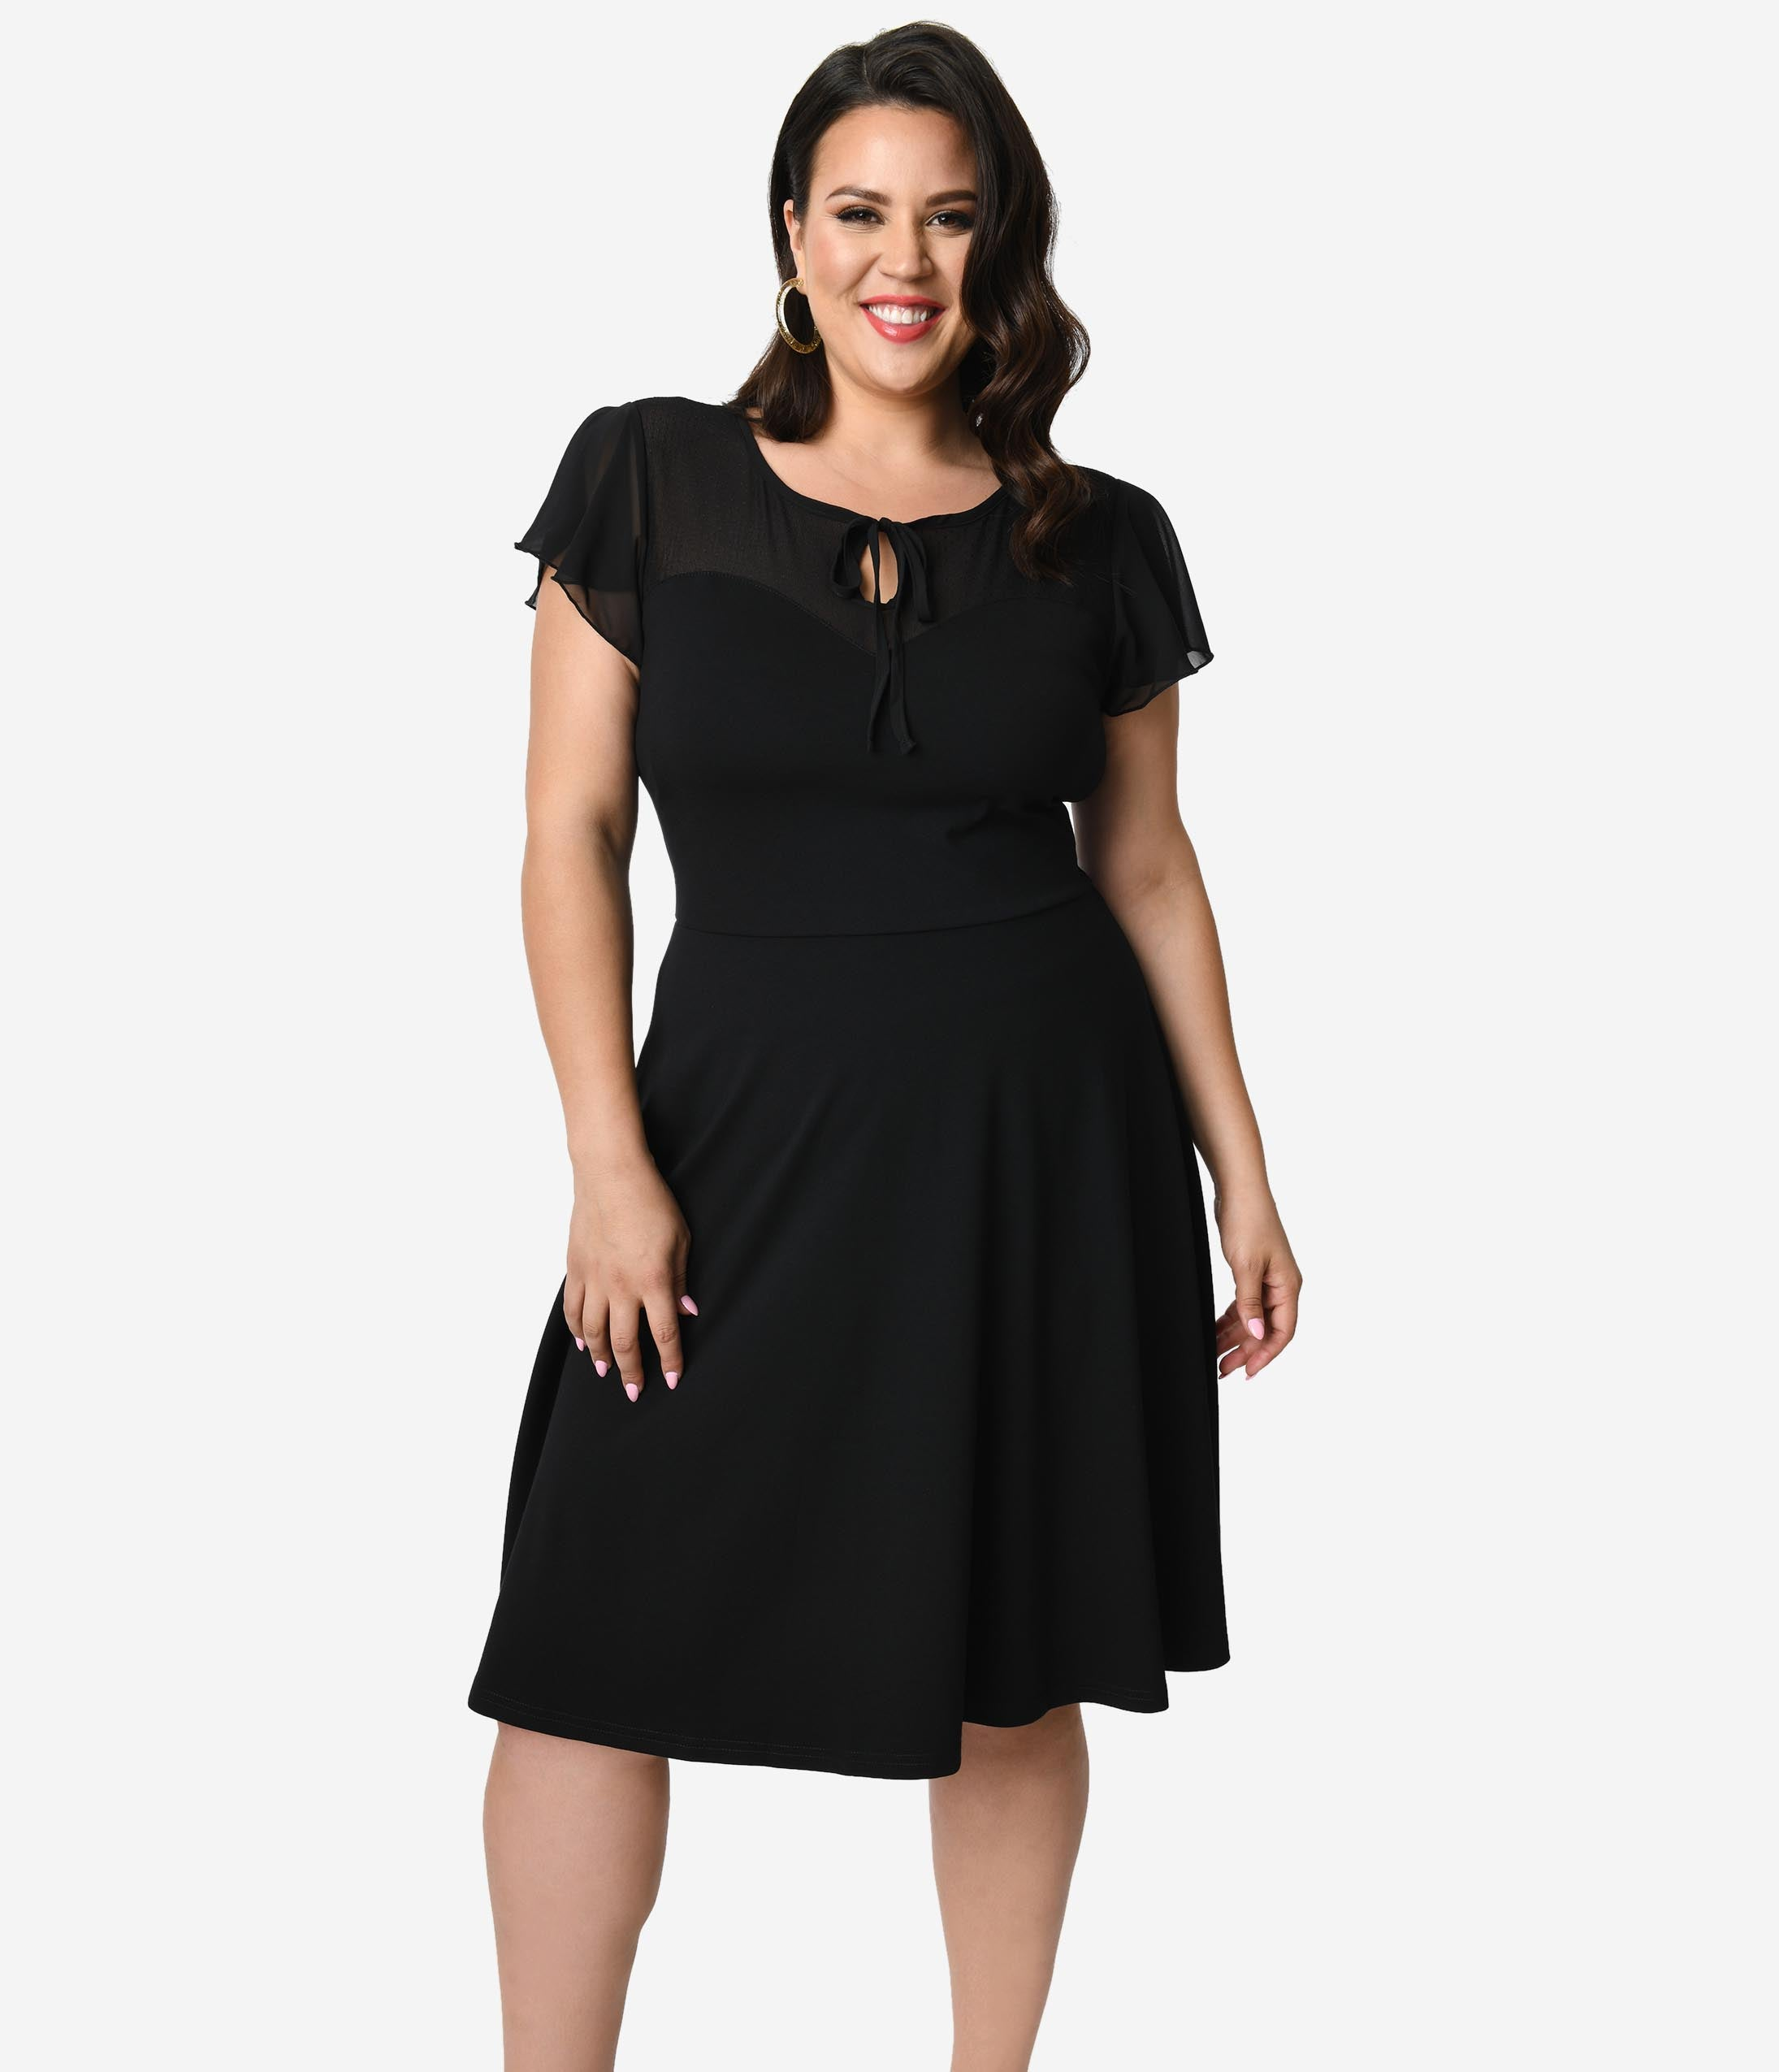 1940s Plus Size Clothing: Dresses History Voodoo Vixen Plus Size Black Swiss Dot Mesh Flutter Sleeve Victoria Swing Dress $68.00 AT vintagedancer.com